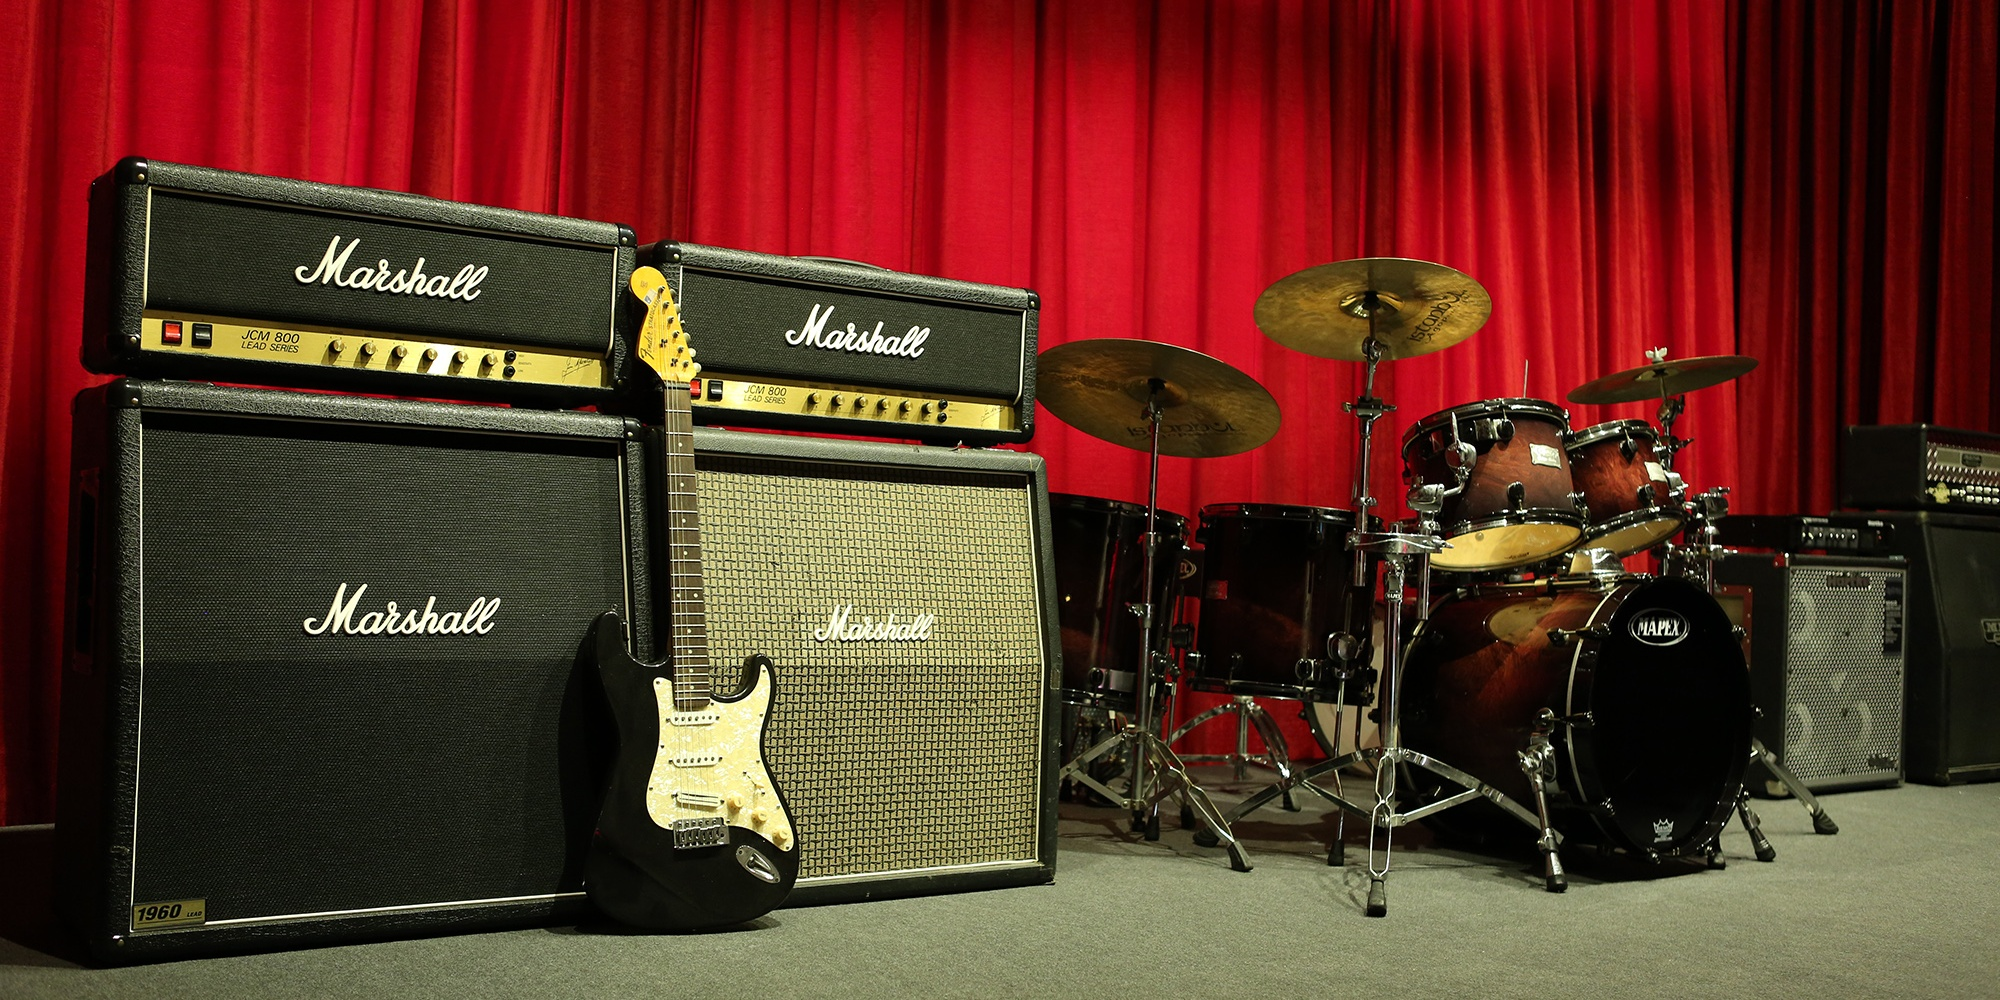 Jamming studios in Singapore: where to go and what to look for